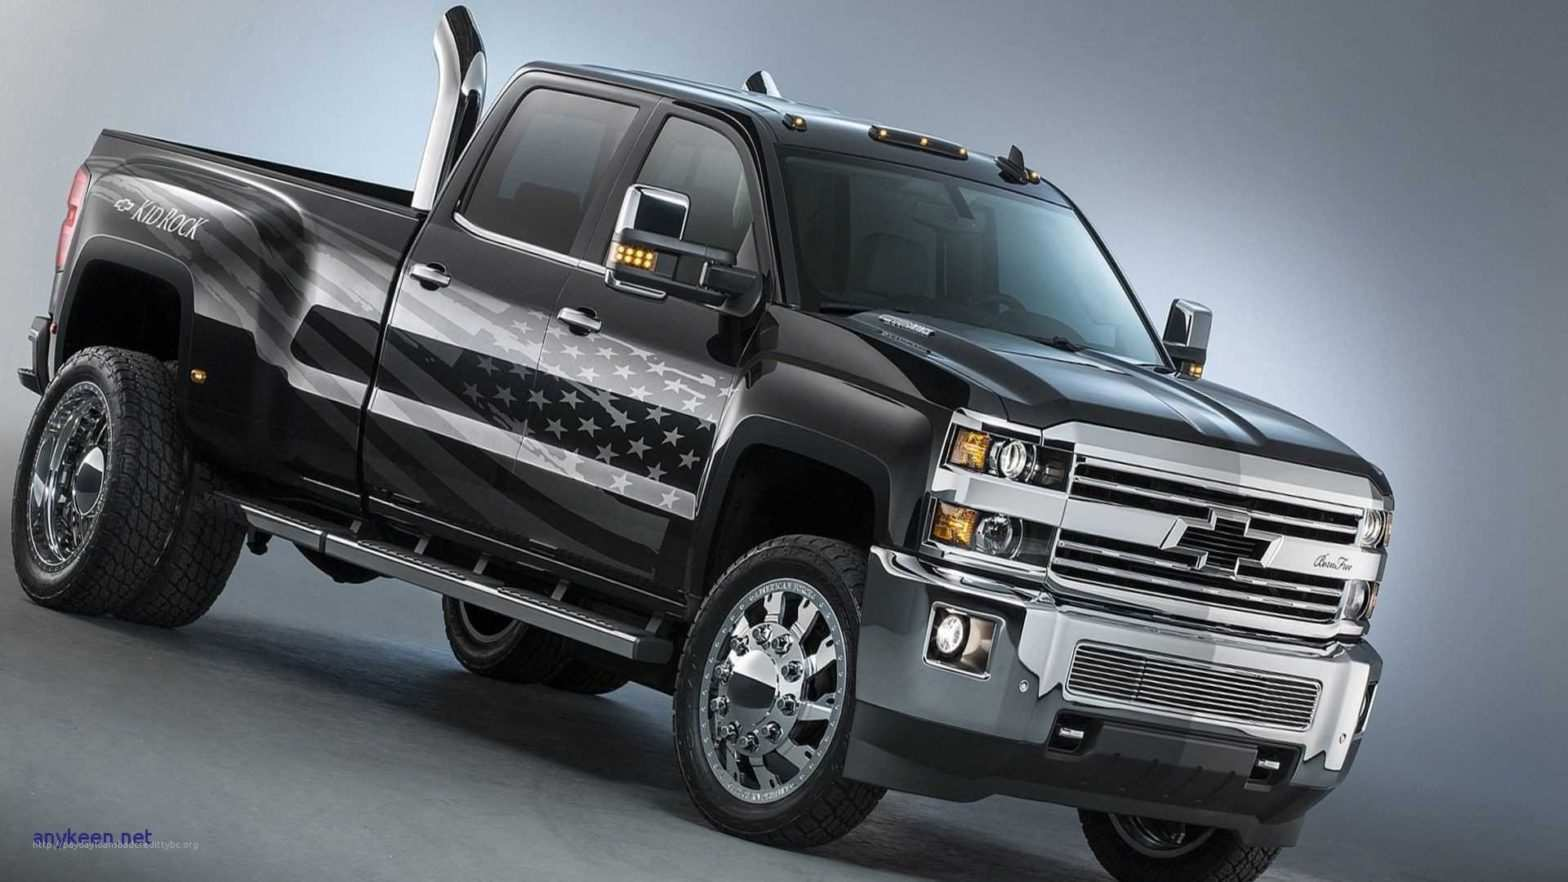 48 Best 2020 Chevy Tahoe Z71 Ss Price Design And Review